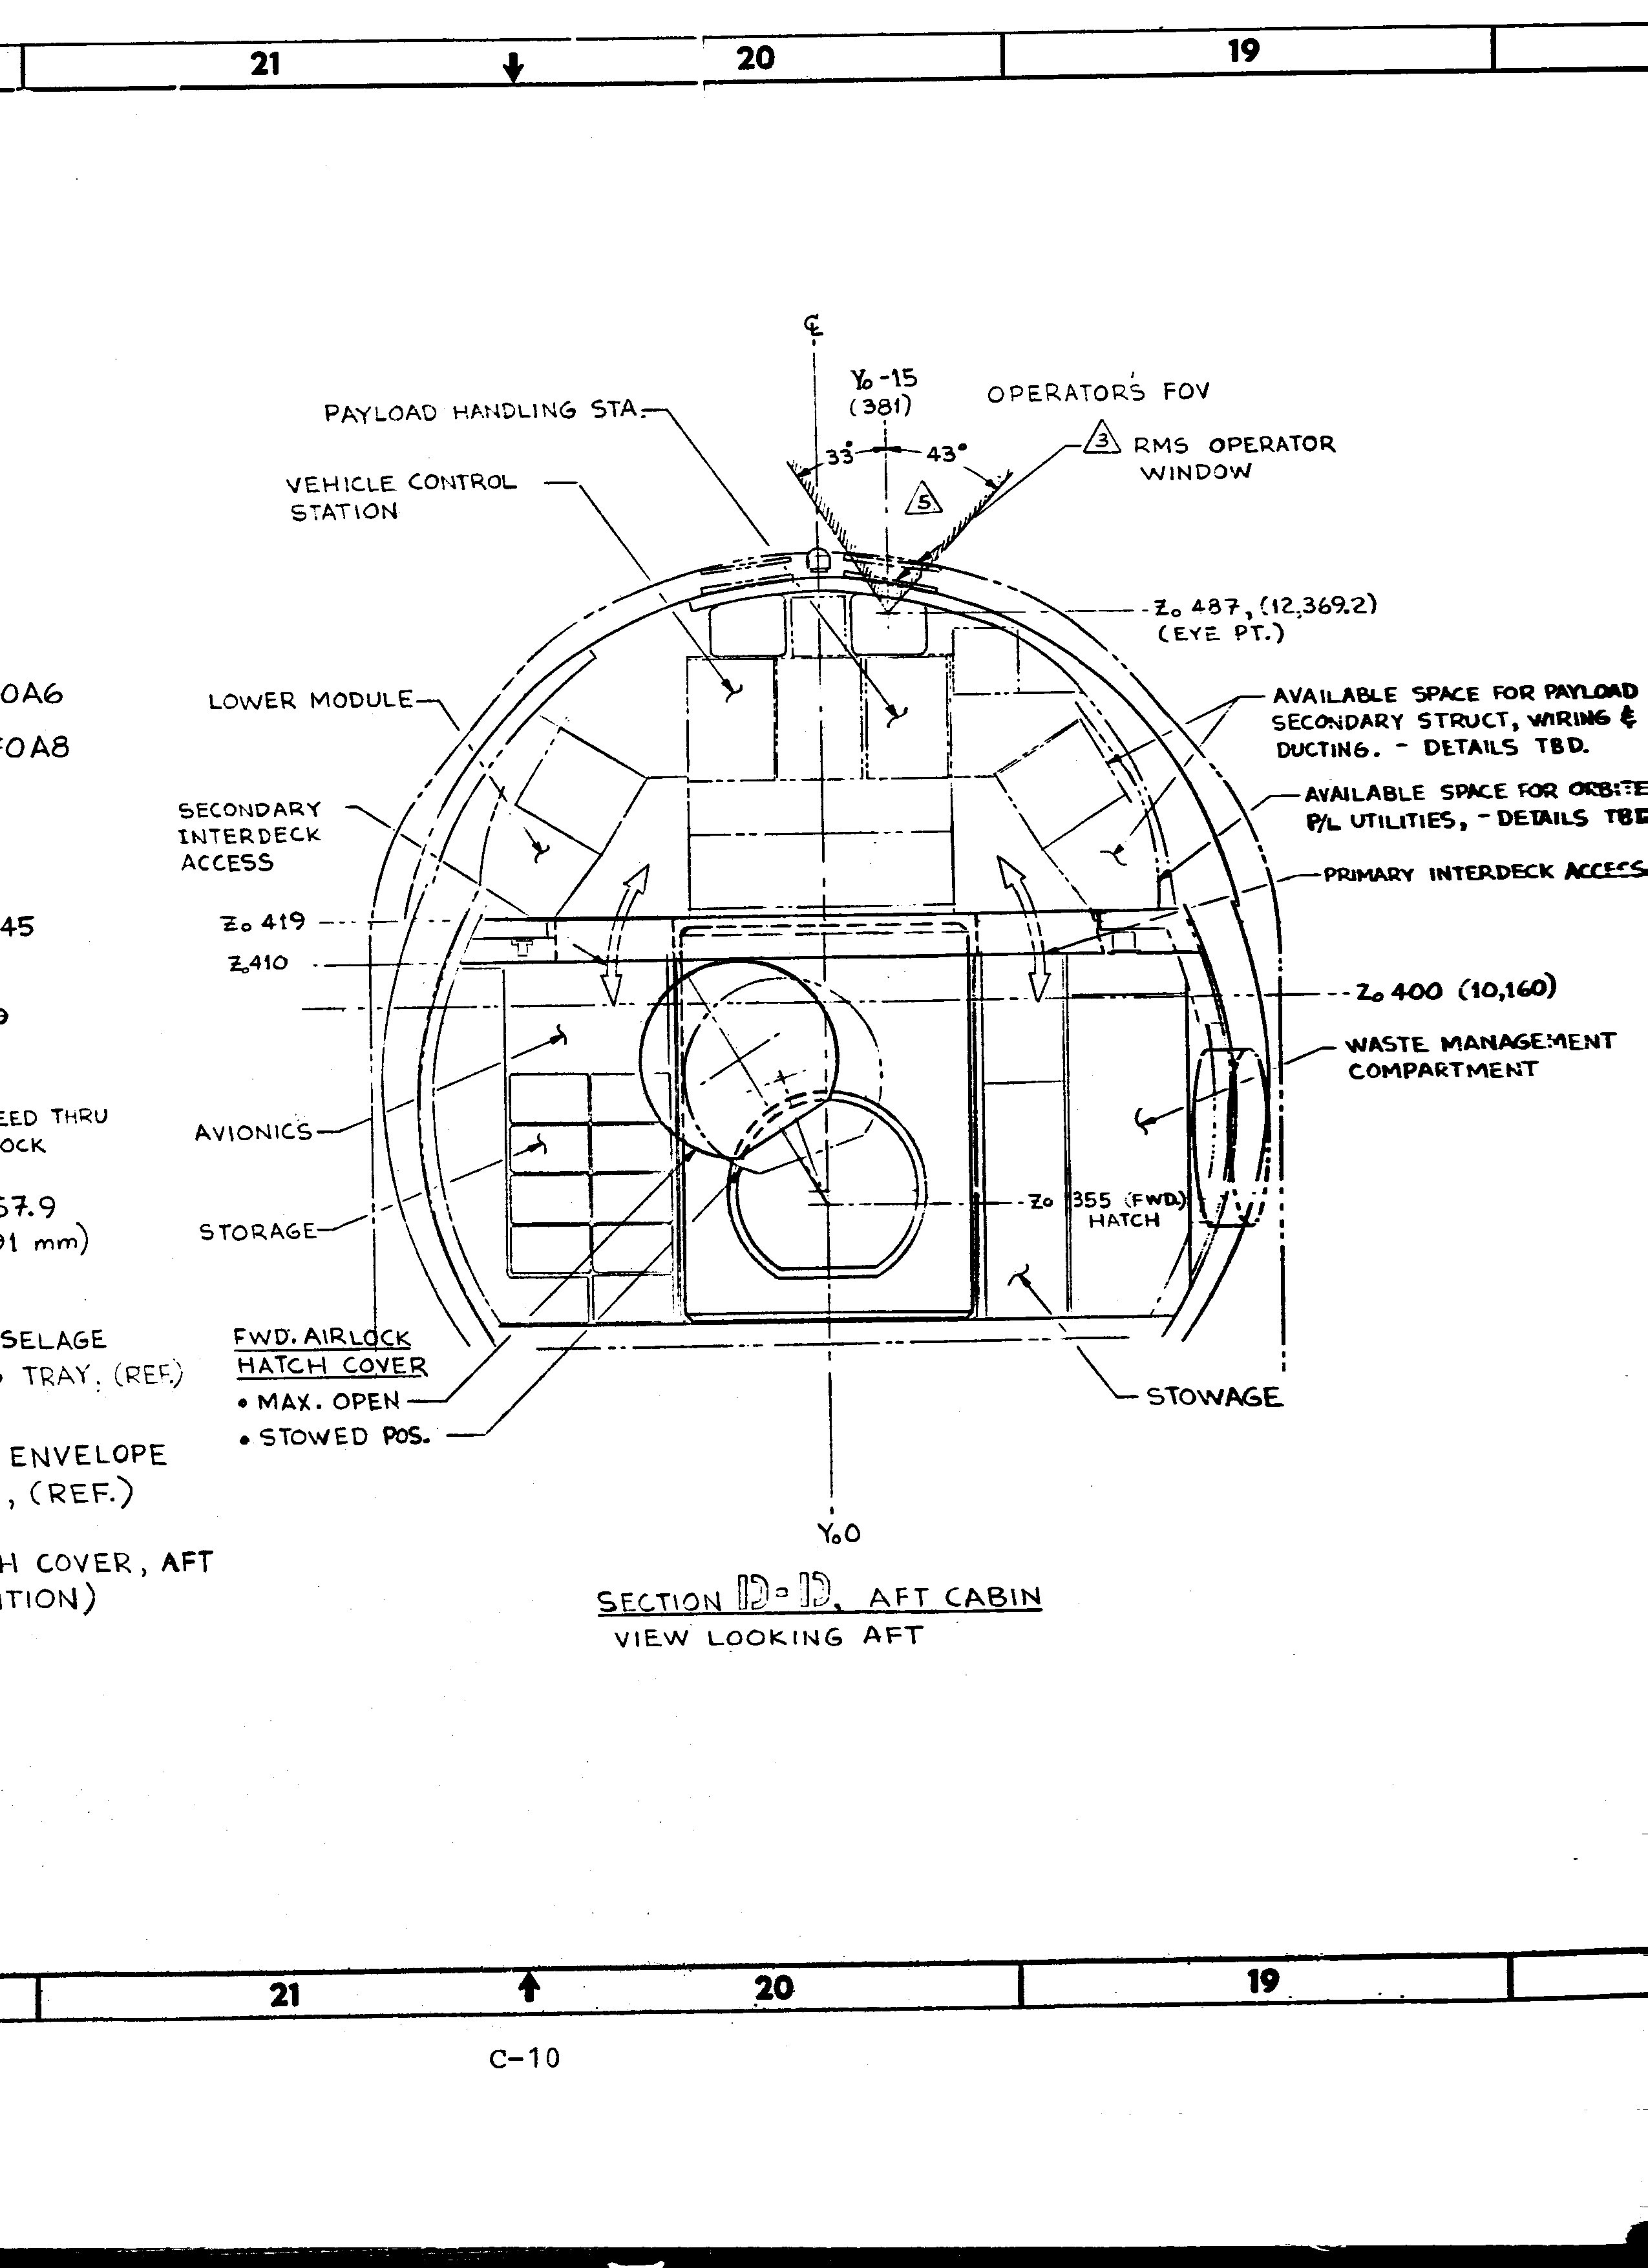 Space Shuttle Cockpit Dimension Drawing